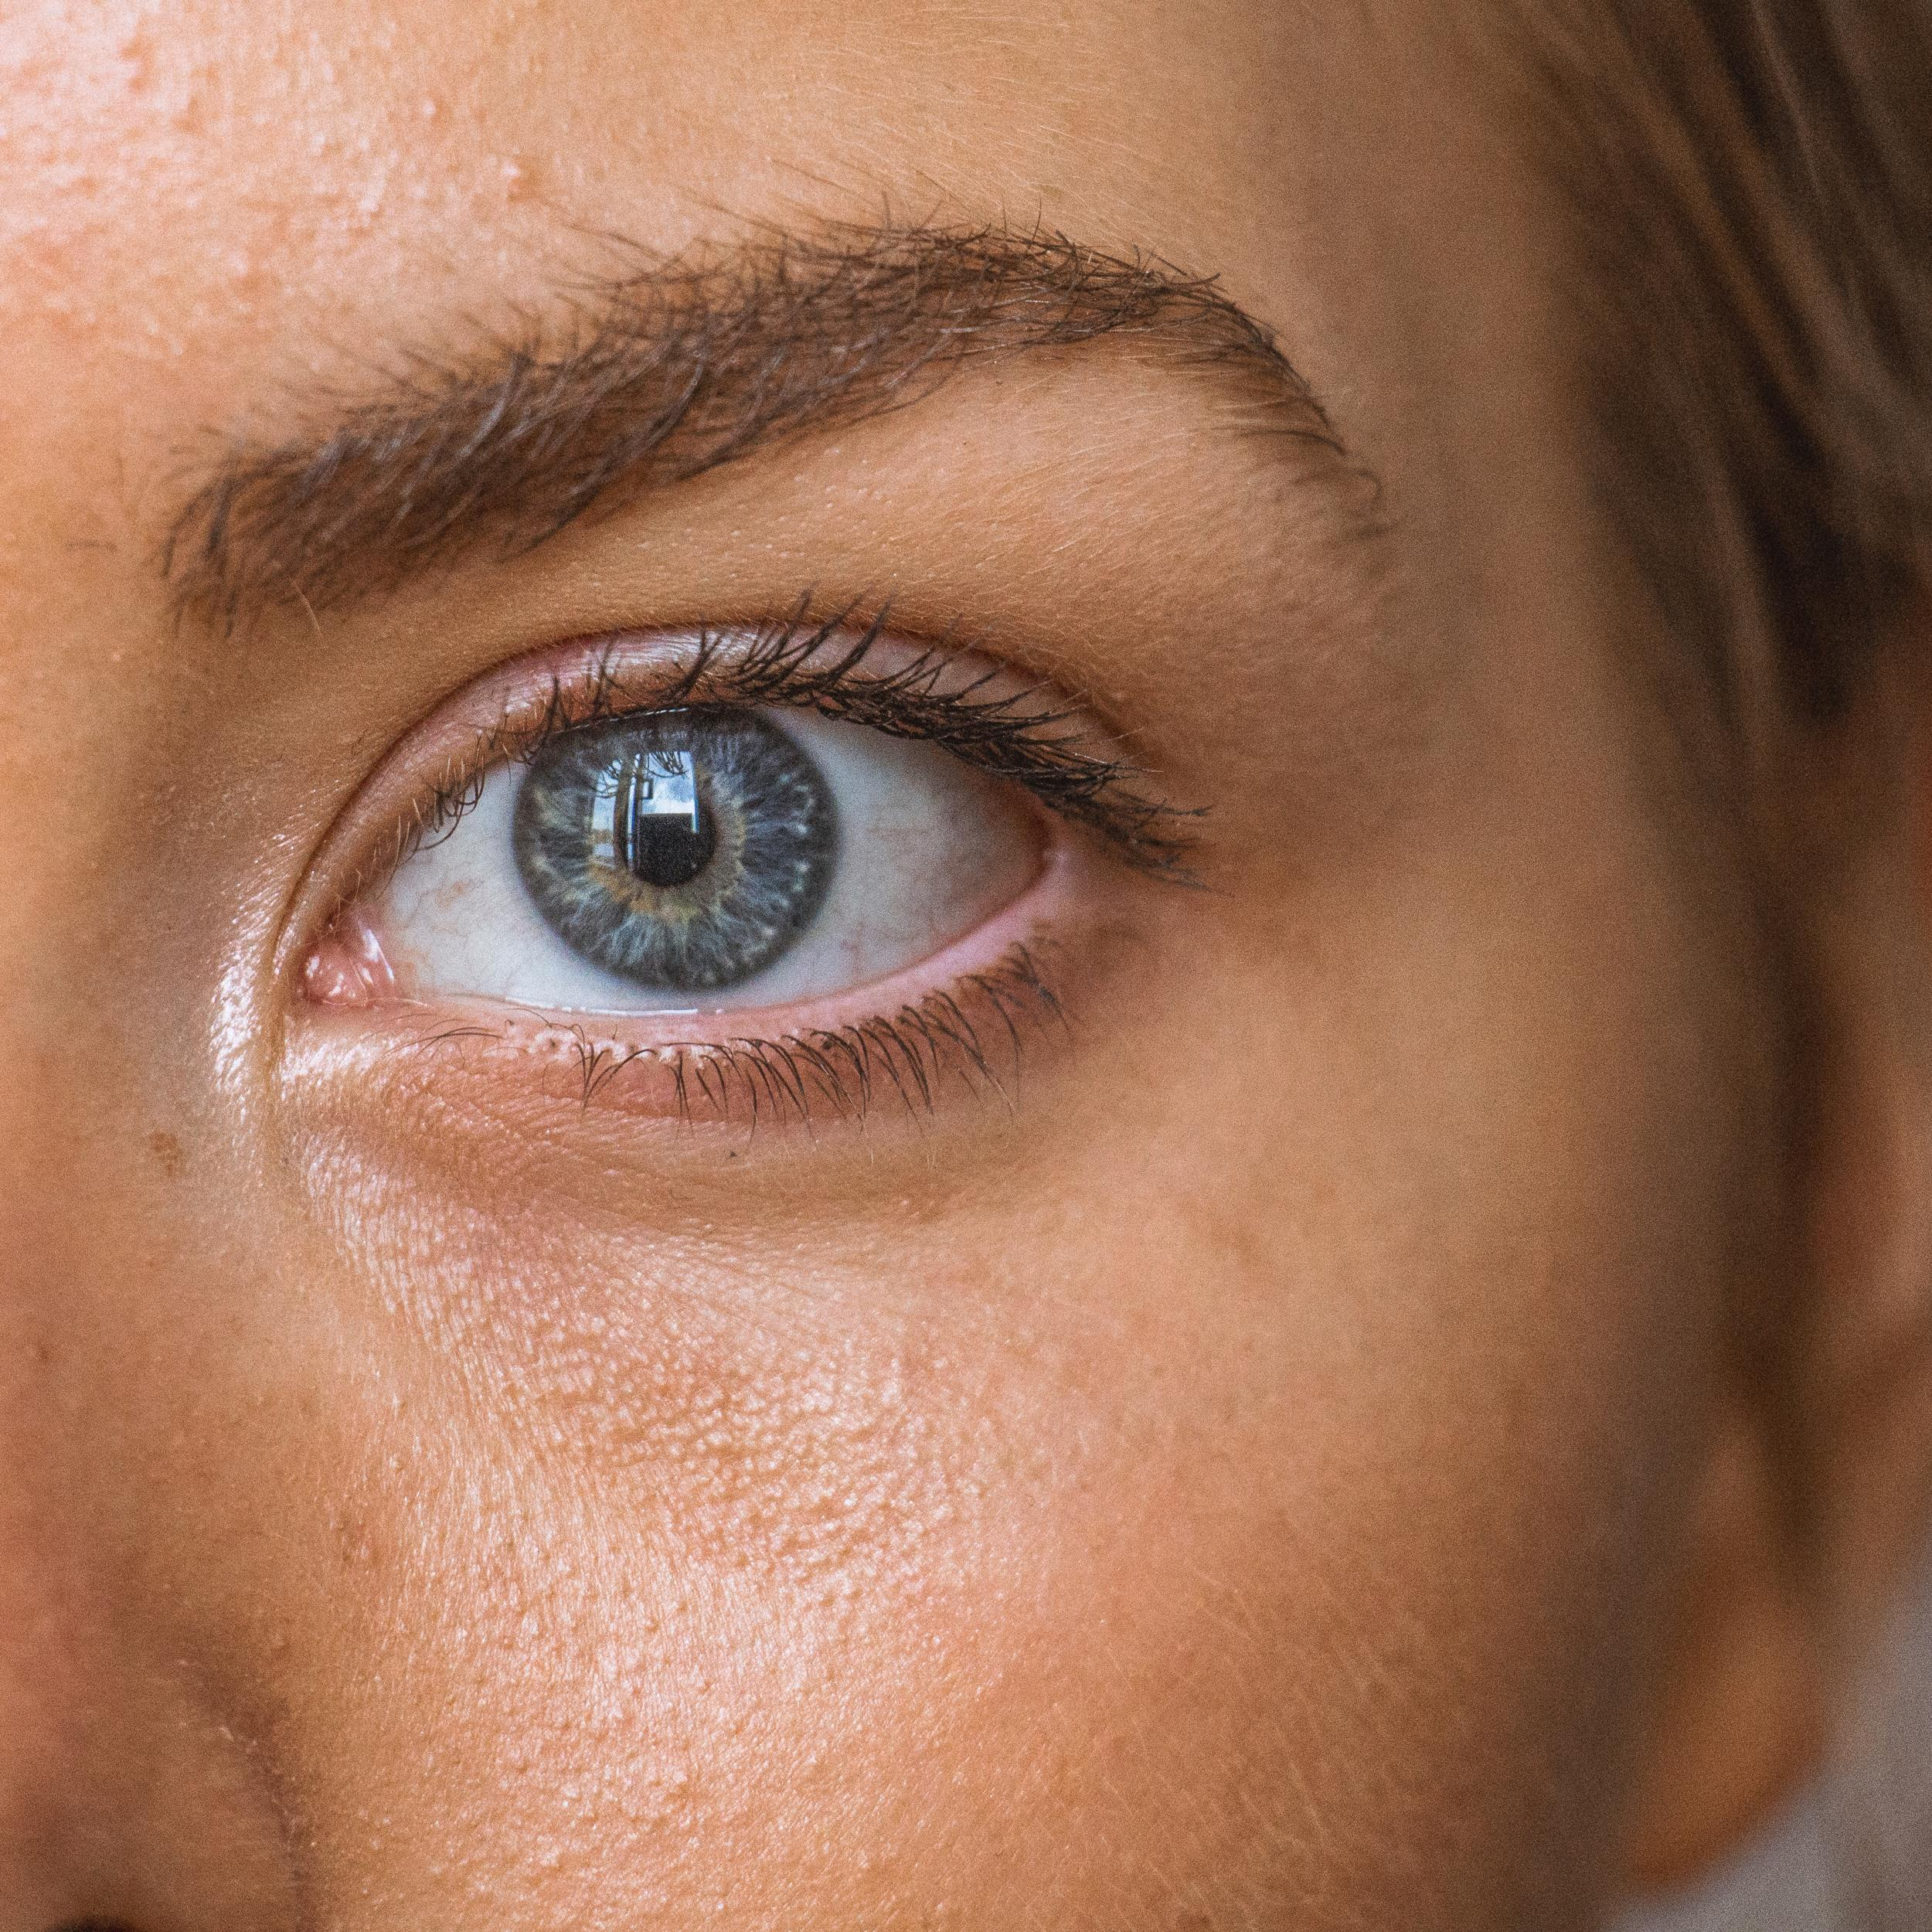 Eye Twitching Can Indicate Fatigue, Nutritional Deficiency, Stress